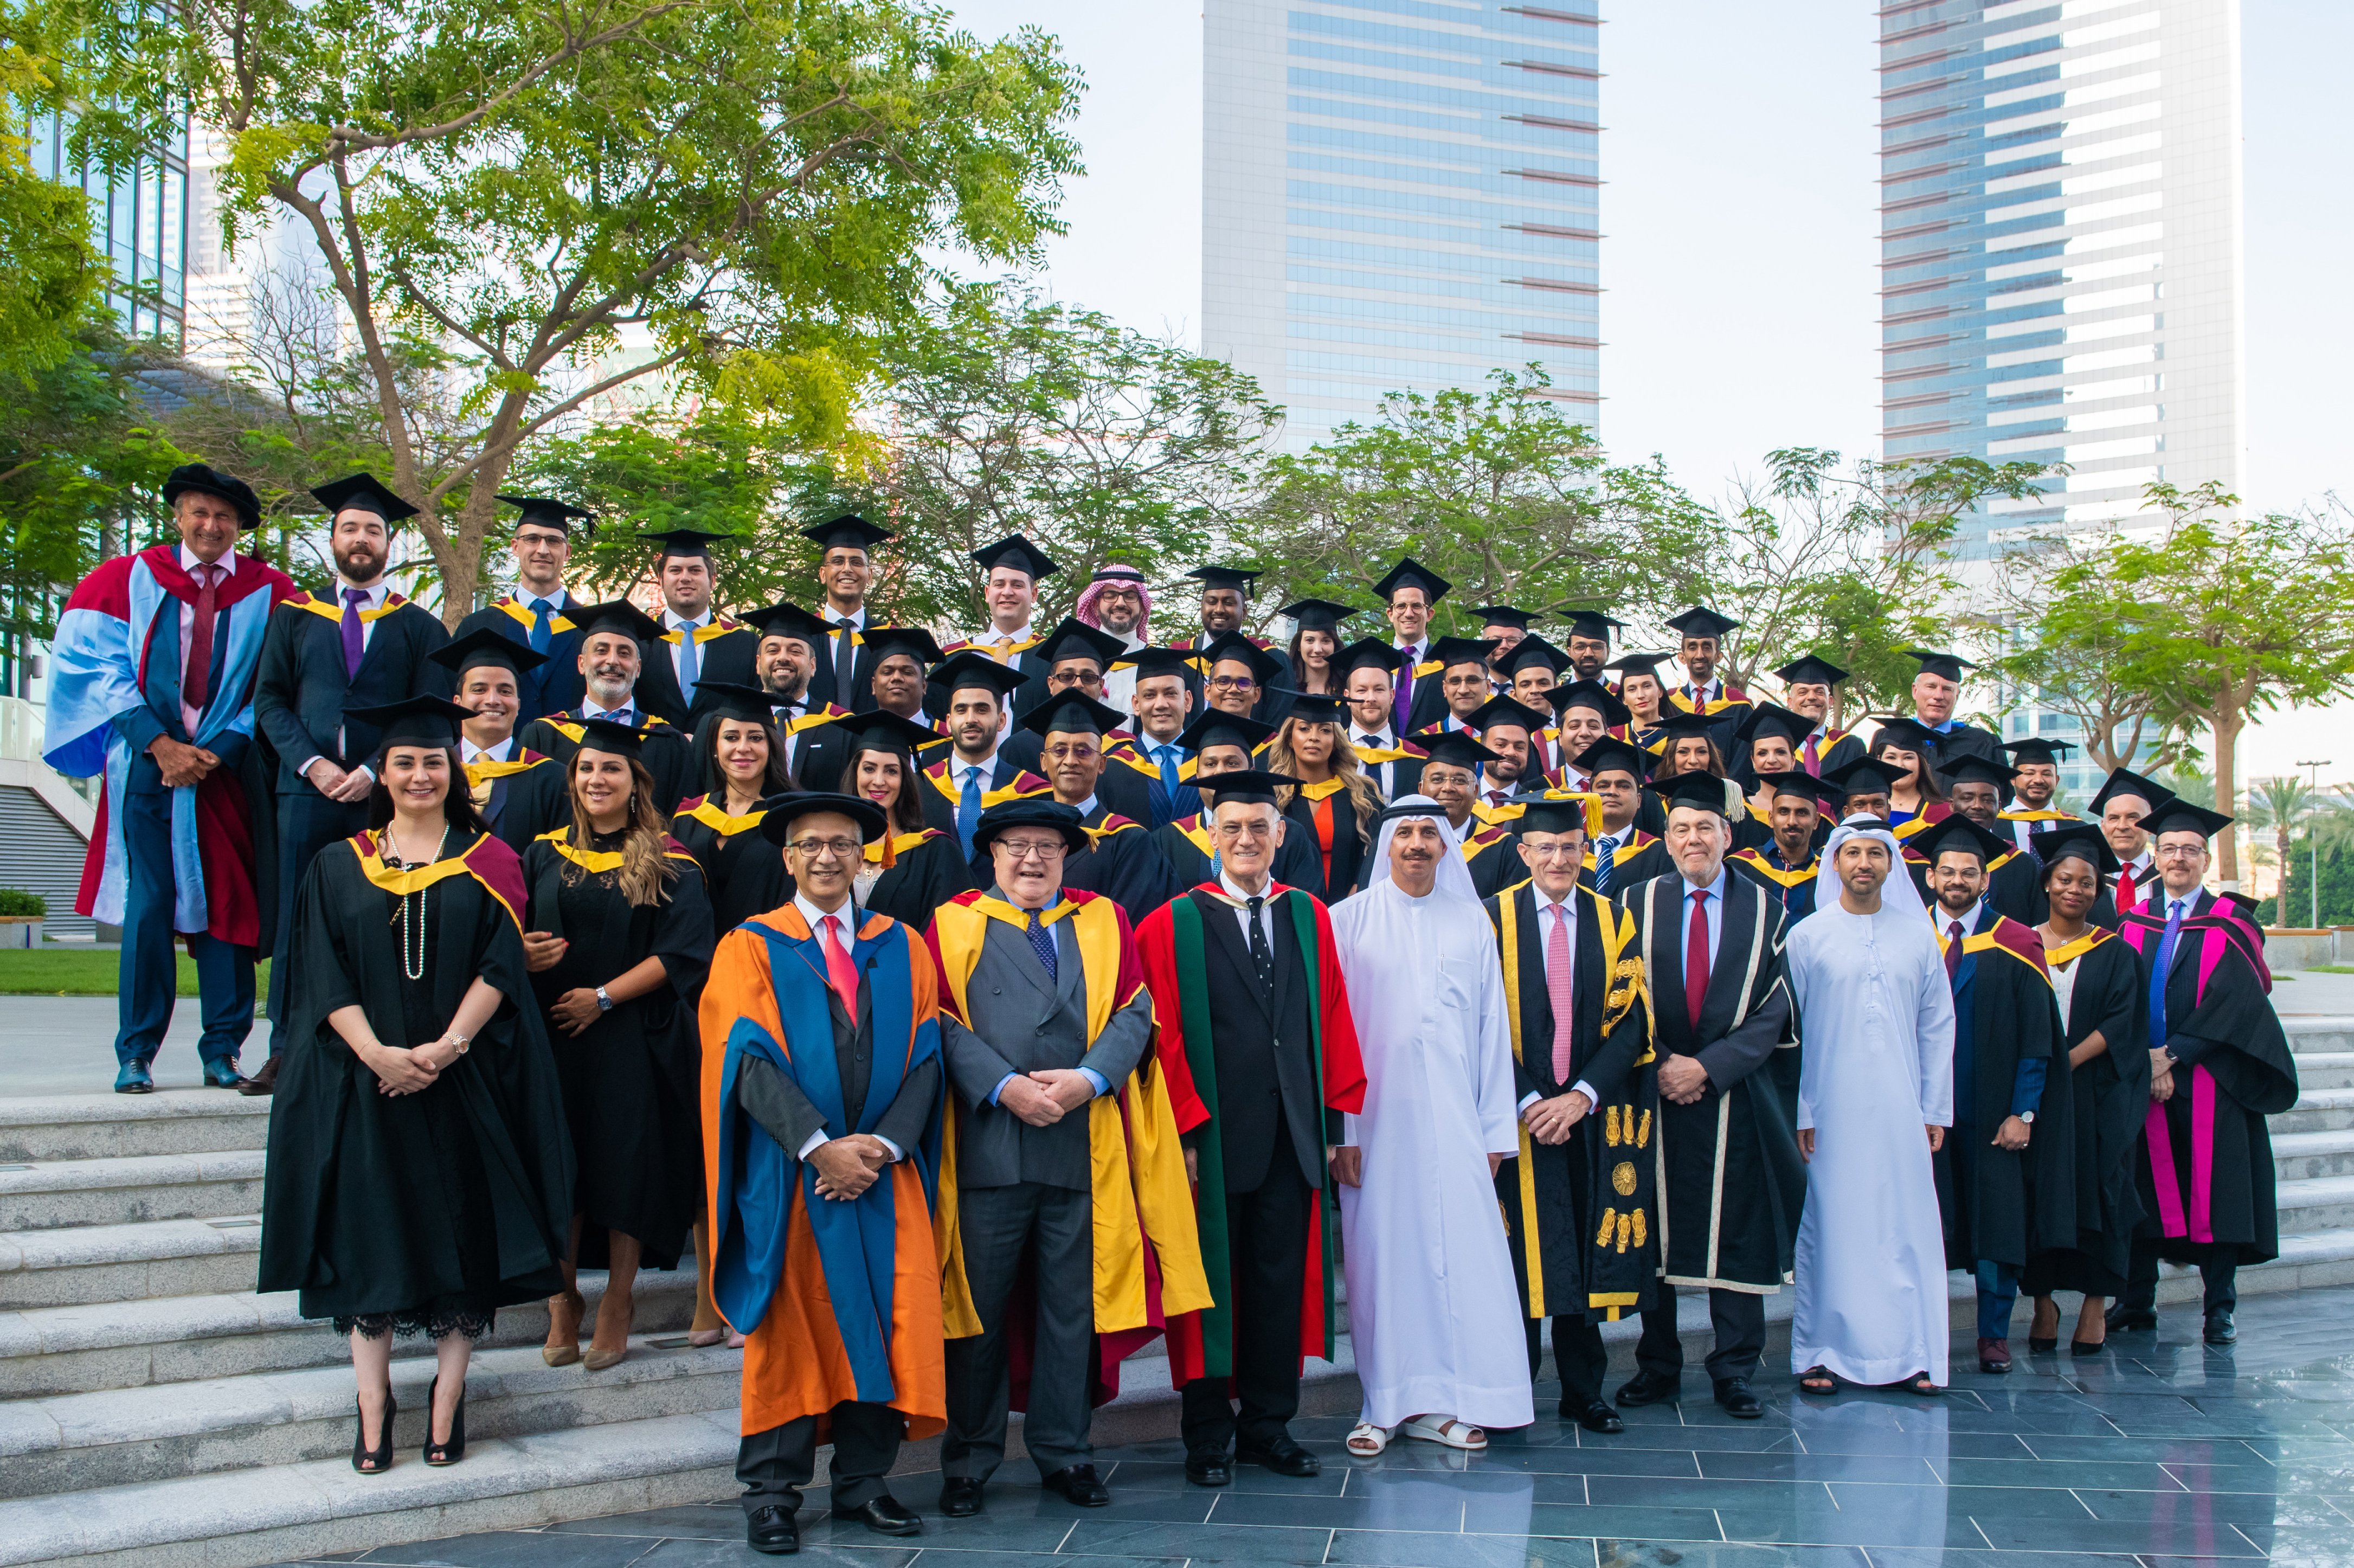 https://www.city.ac.uk/__data/assets/image/0004/466789/portrait_City,-University-of-London-10th-graduation-in-Dubai-.jpg